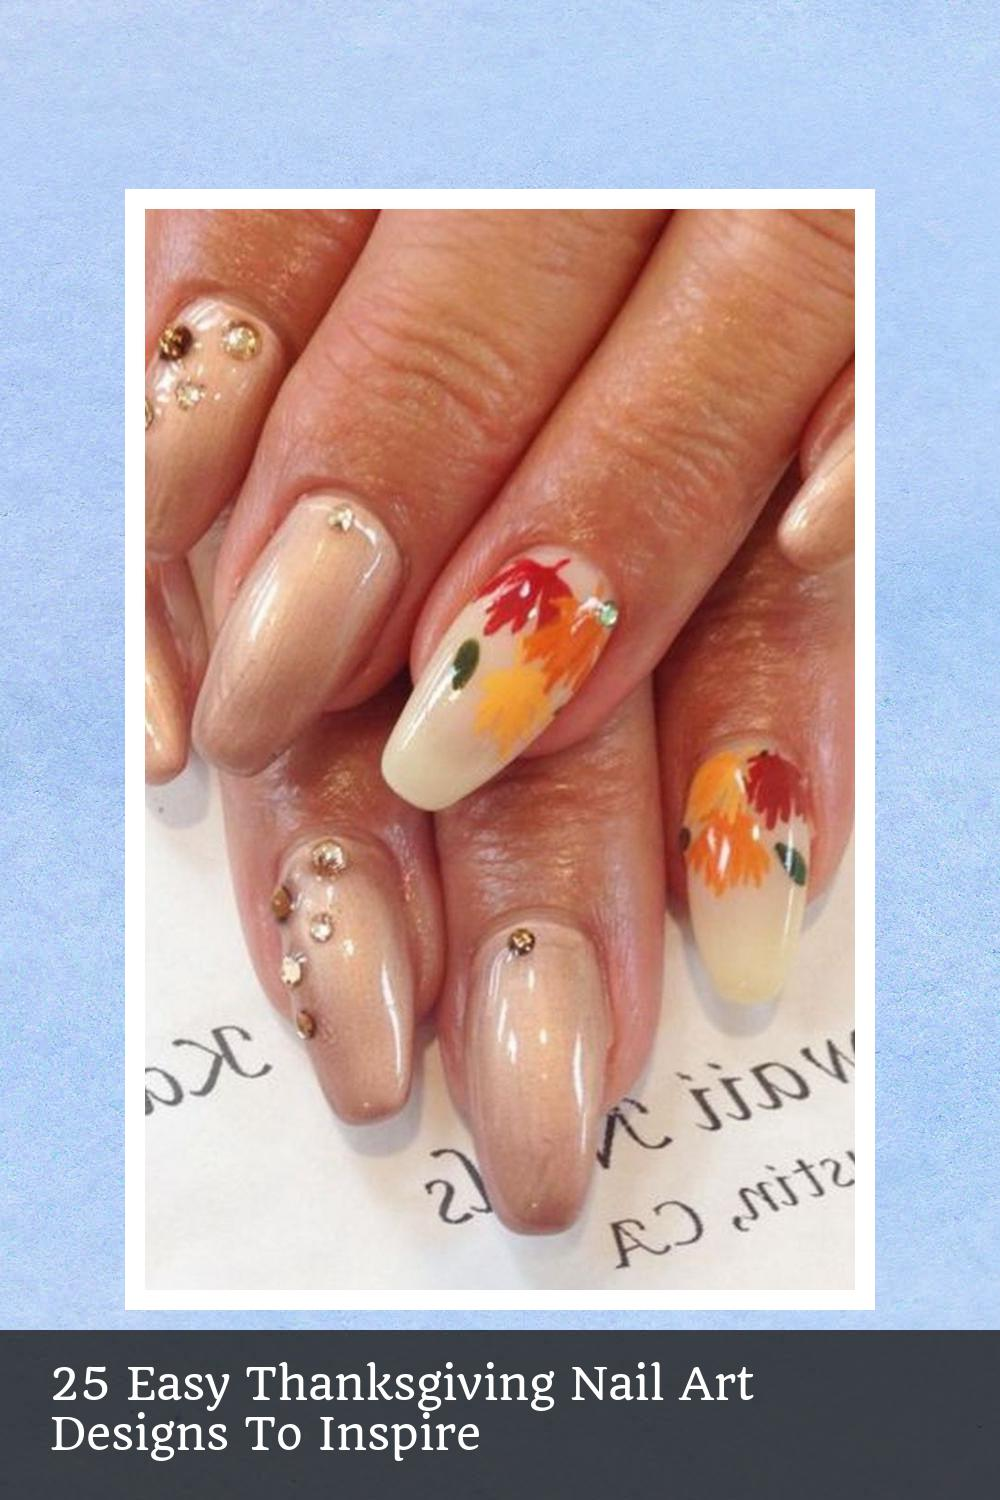 25 Easy Thanksgiving Nail Art Designs To Inspire 20